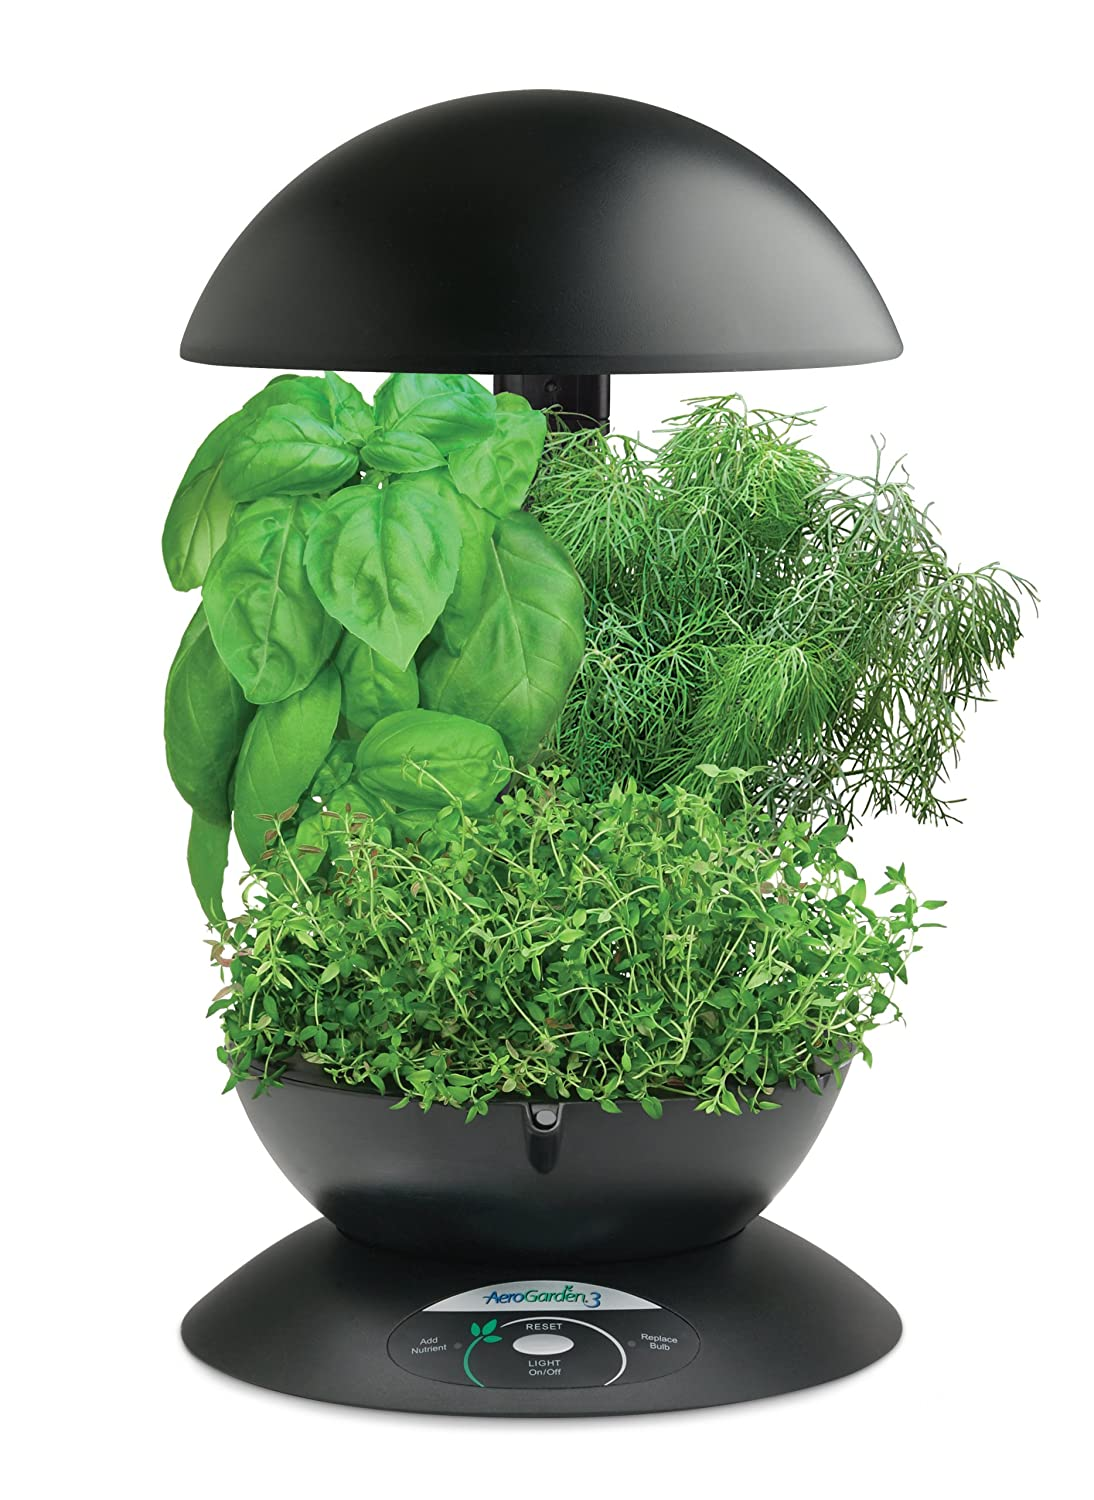 Grow your own indoor herb garden aerogarden 3 with gourmet for Indoor gardening kit